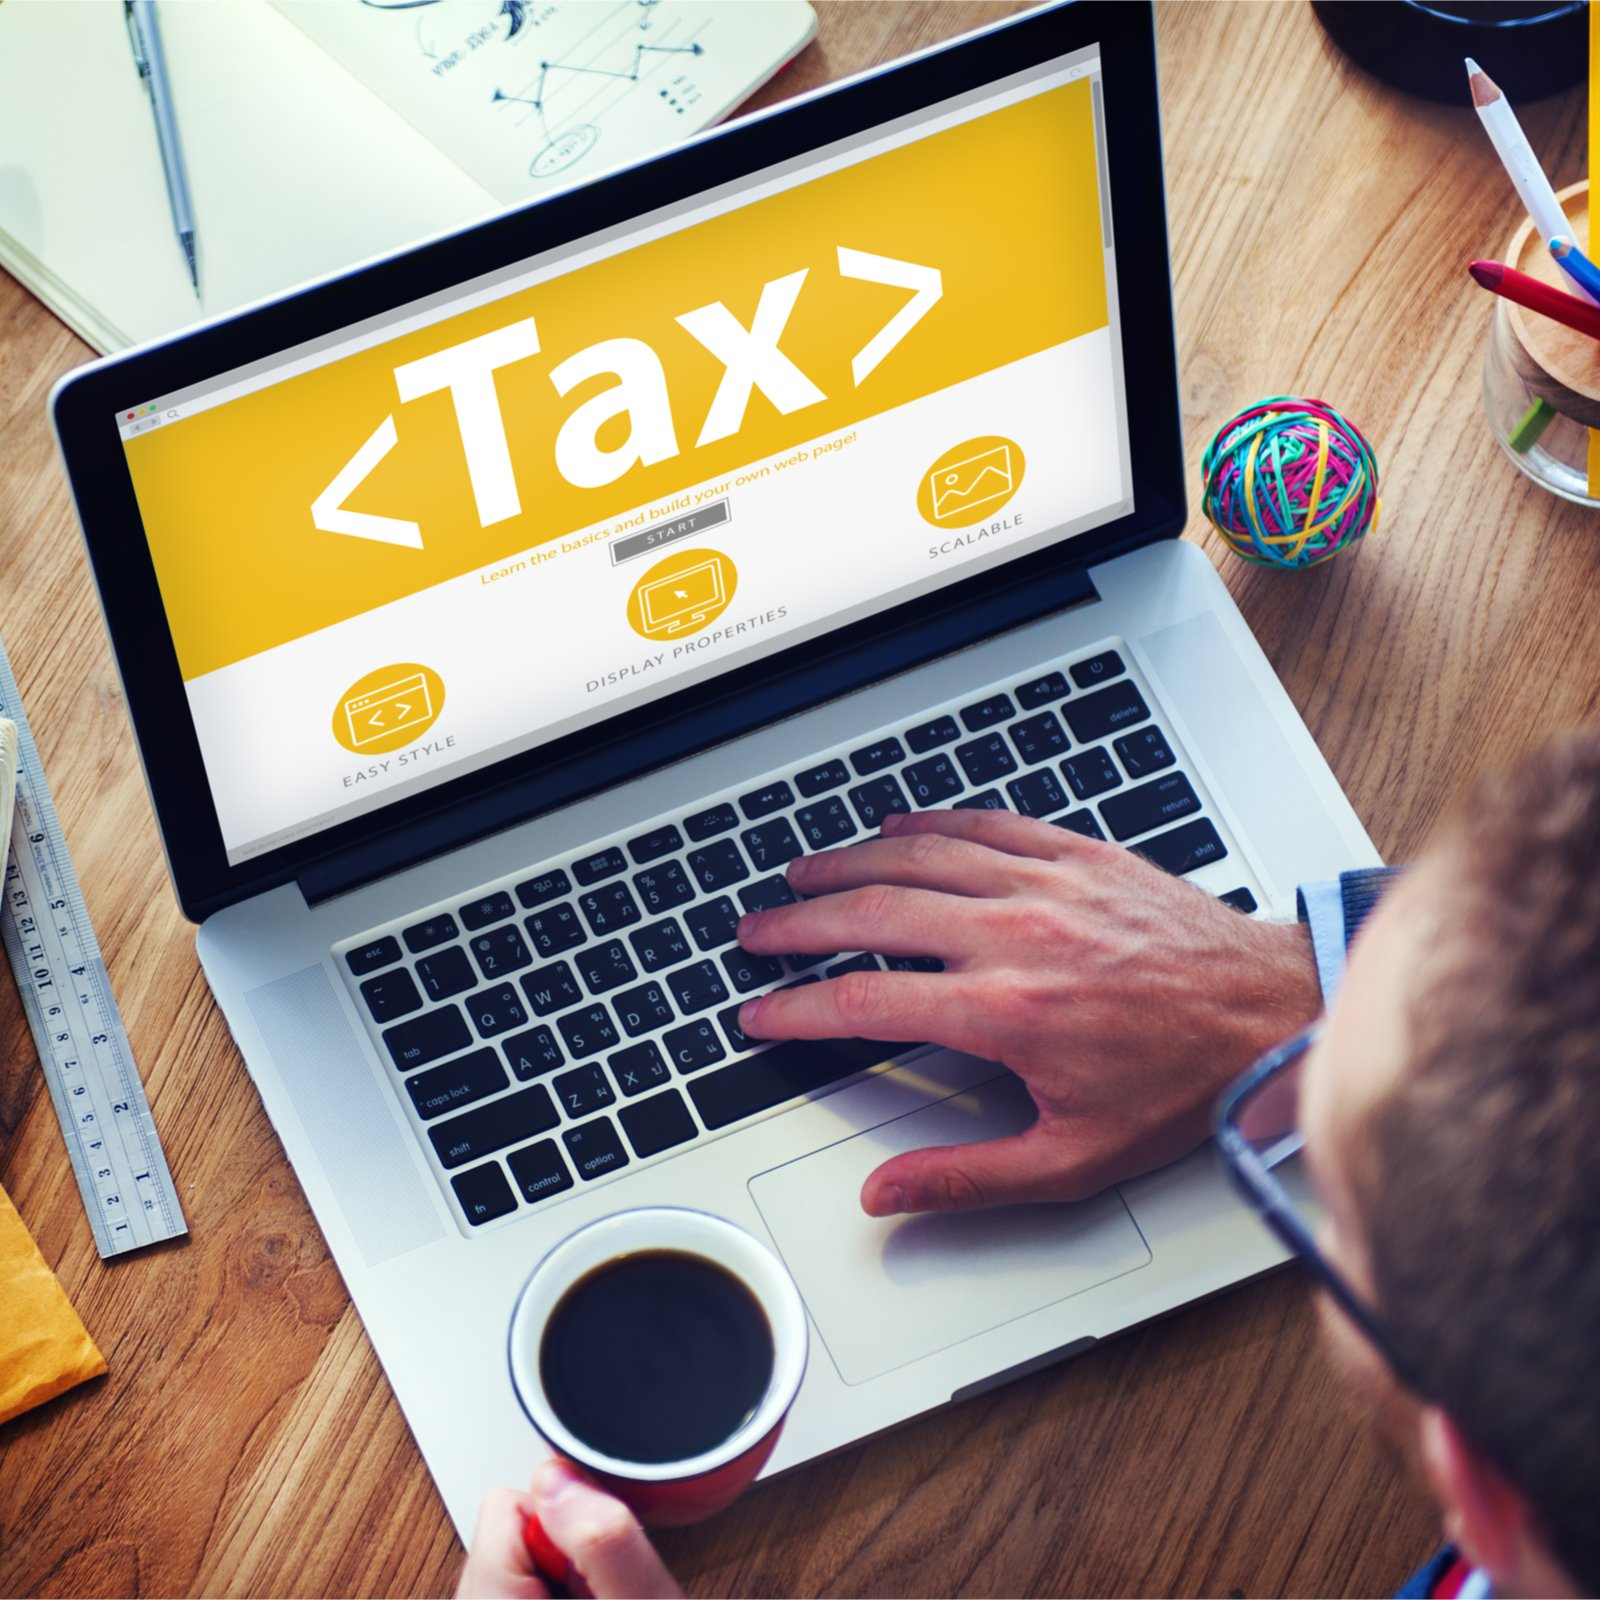 Bitcoin Tax Reporting Software Developer Node40 Acquired for $8m